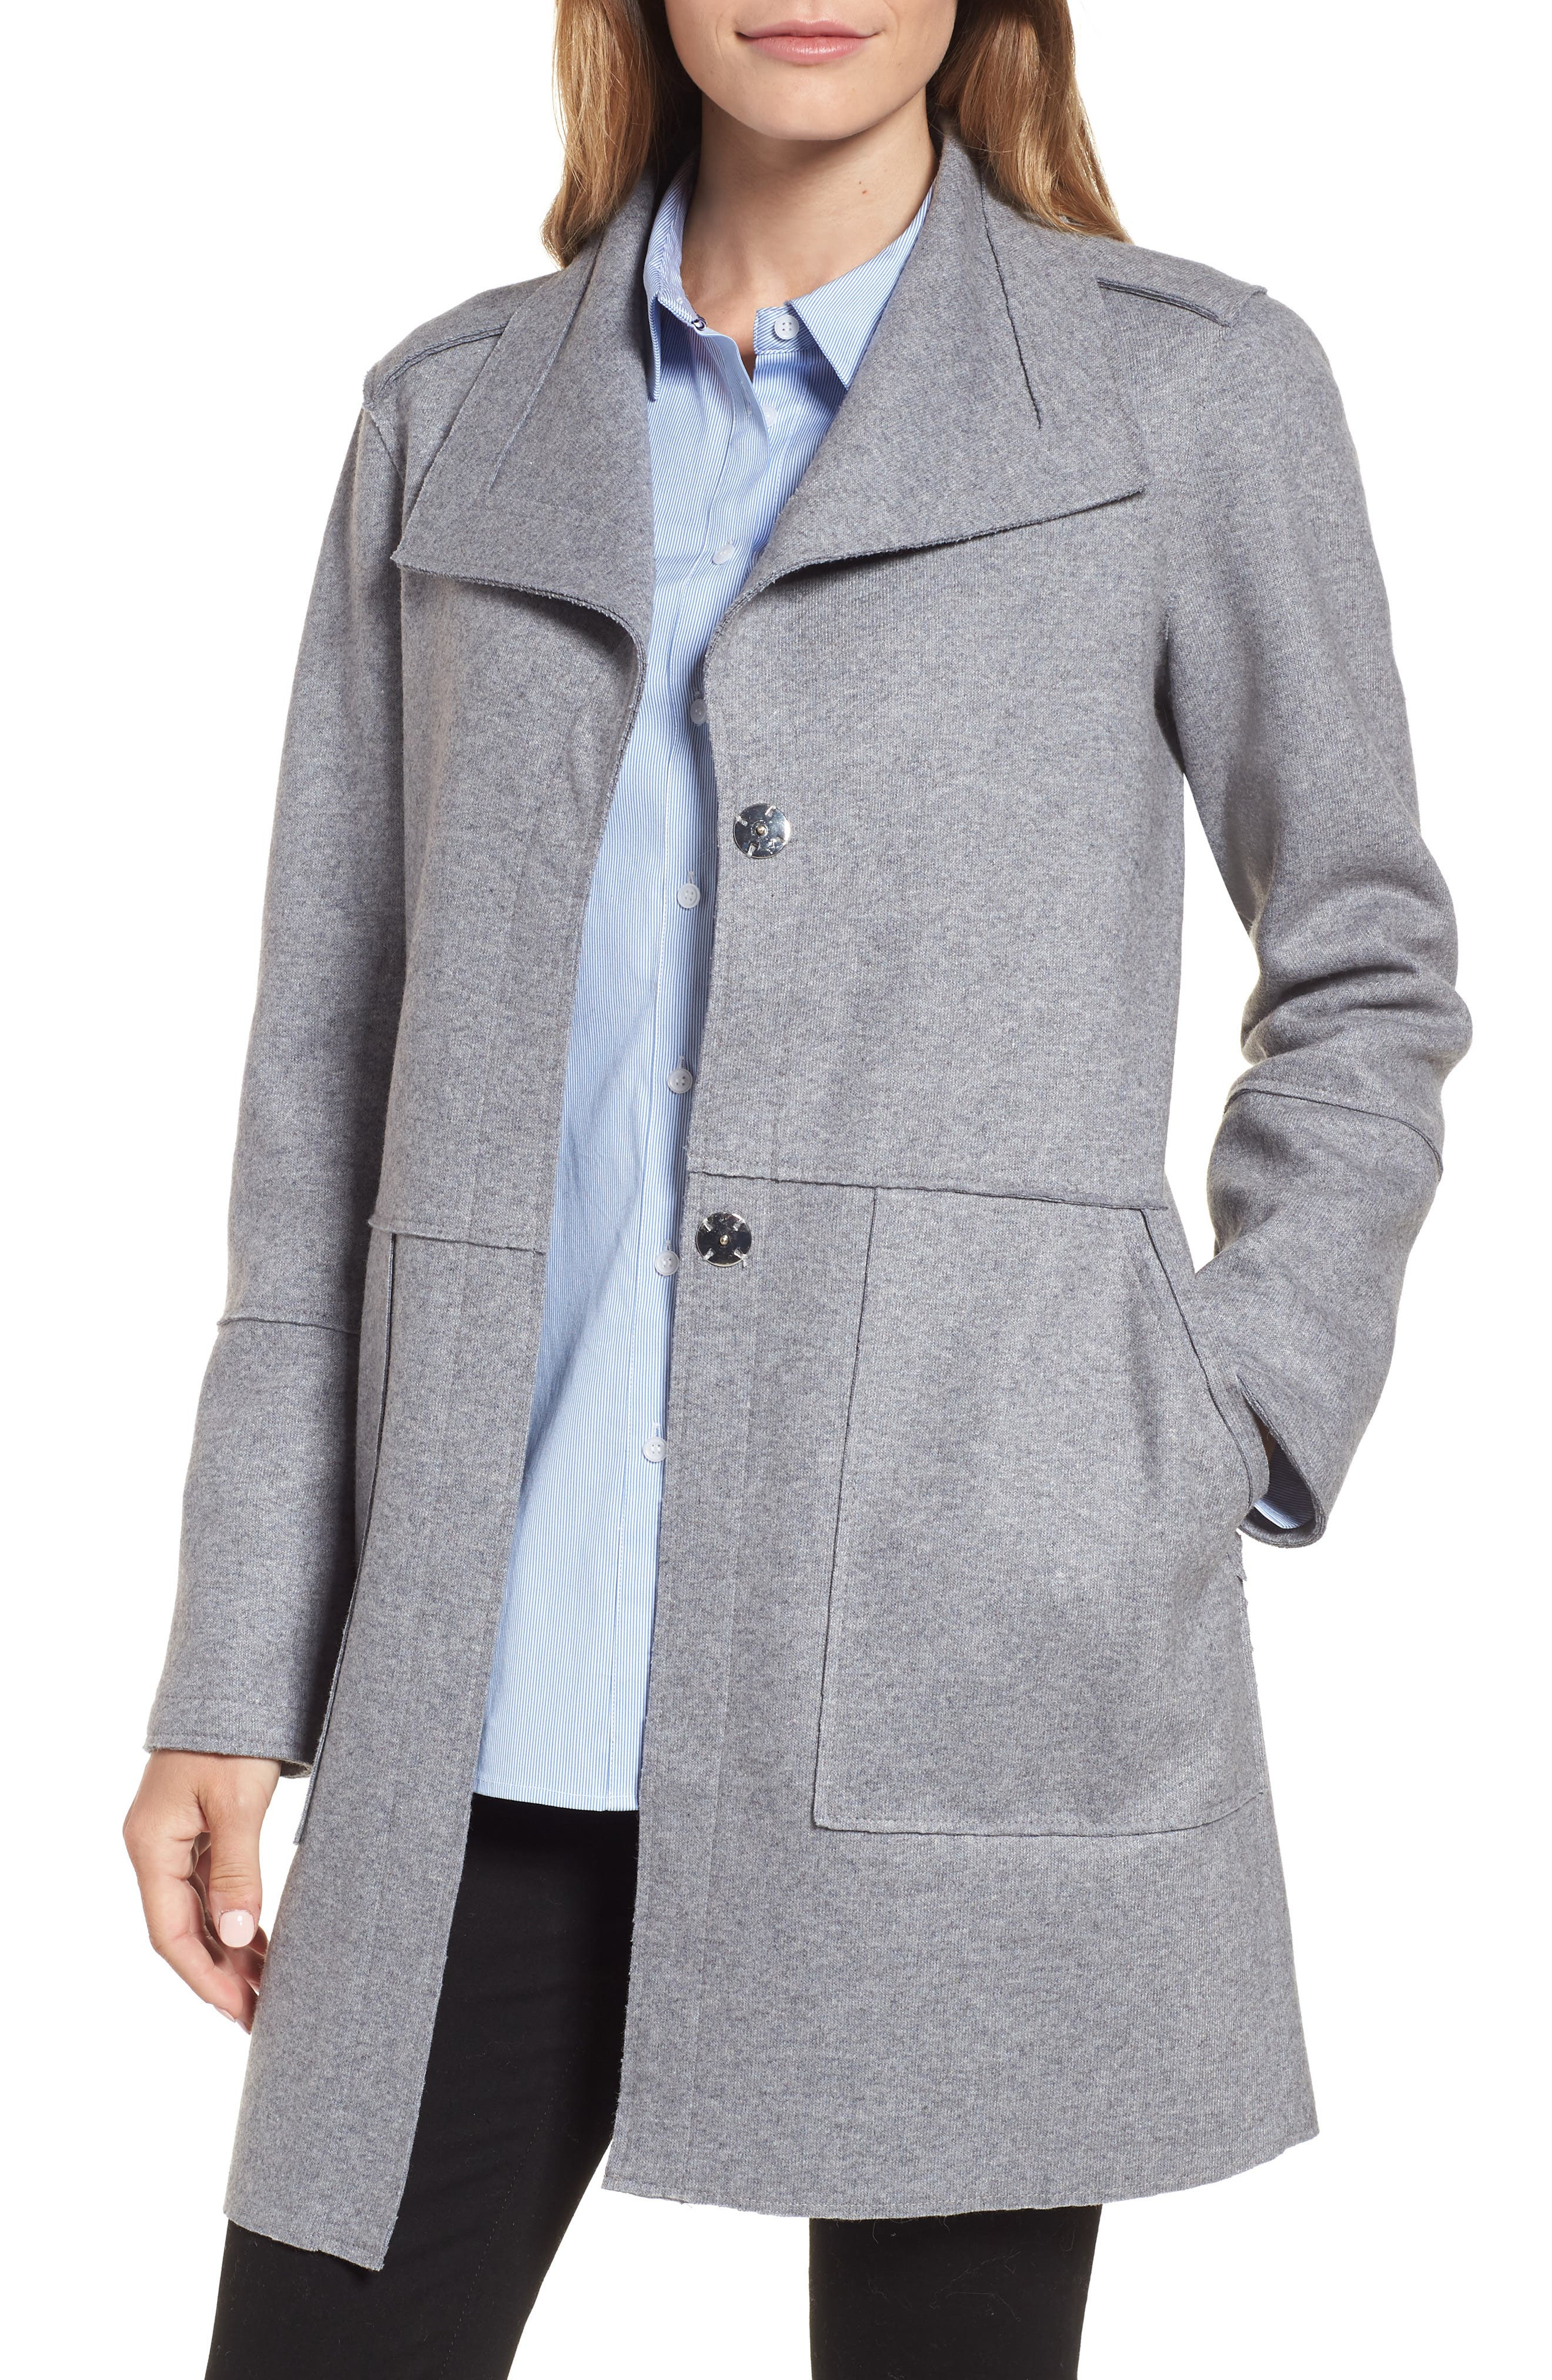 Envelope Collar Wool Blend Knit Coat,                             Main thumbnail 1, color,                             LIGHT GREY